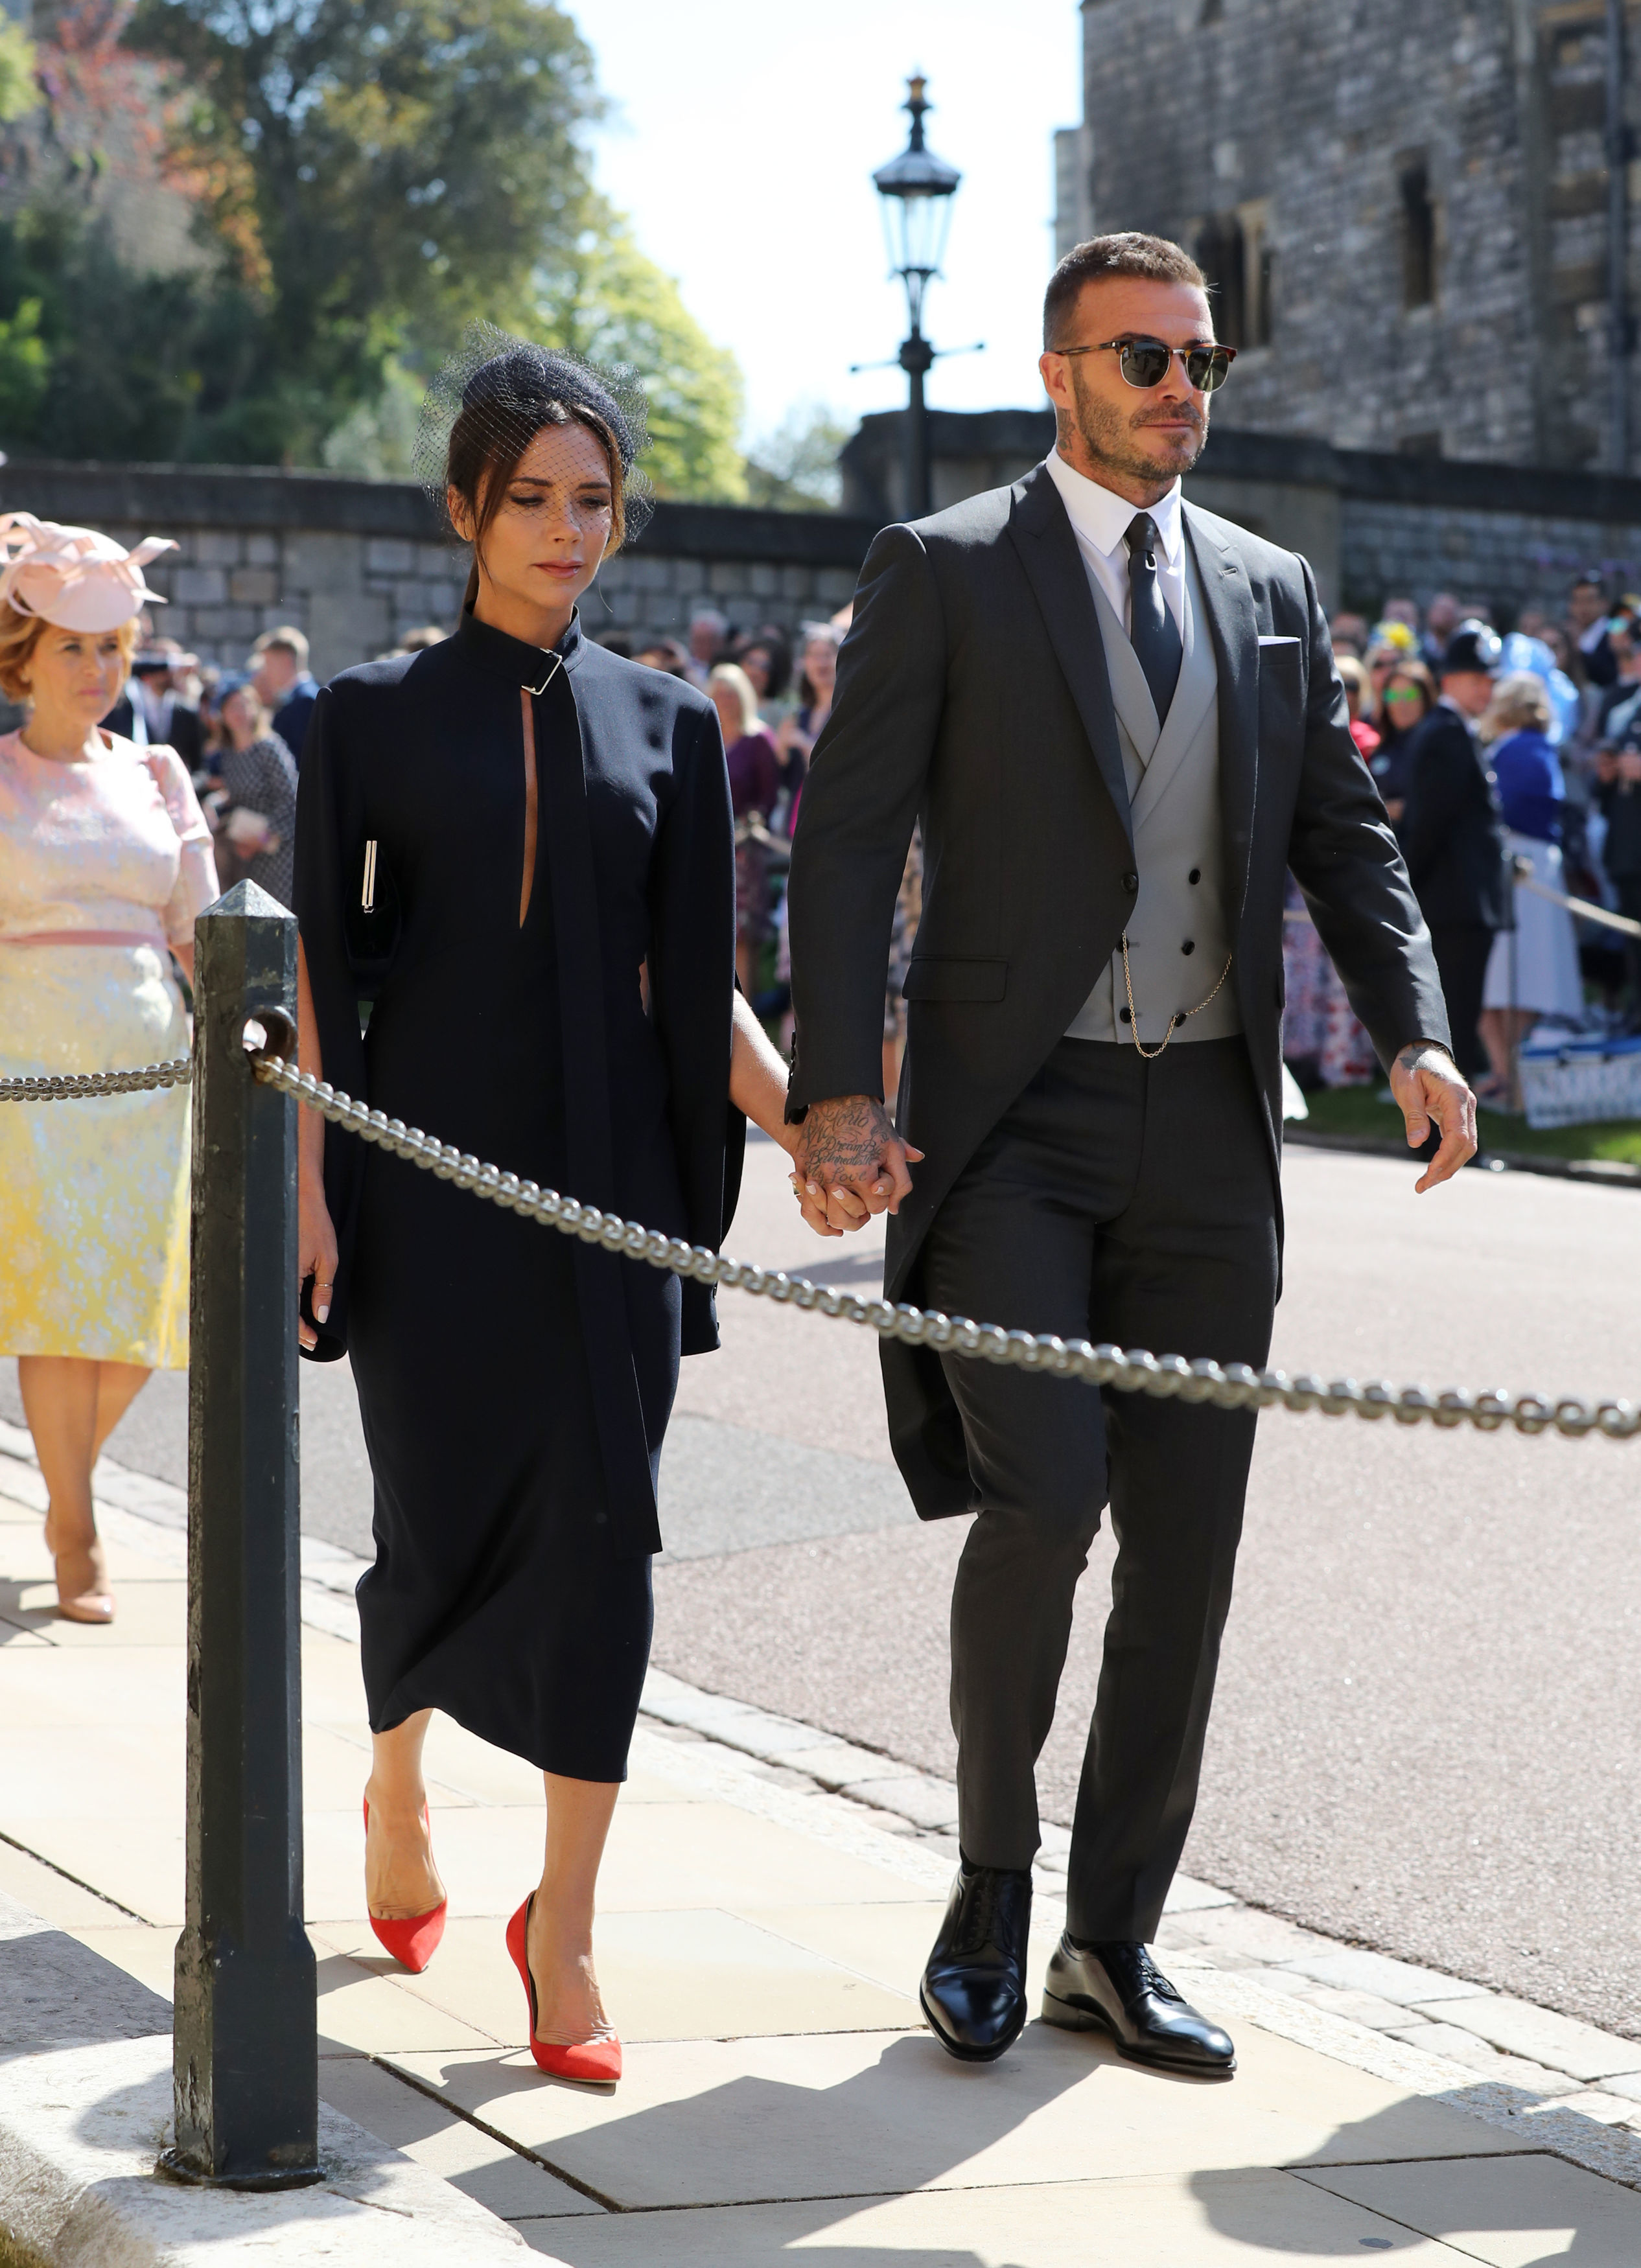 43feaddd794fc Former England footballer David Beckham (R) arrives with his wife Victoria  for the wedding ceremony of Britain s Prince Harry